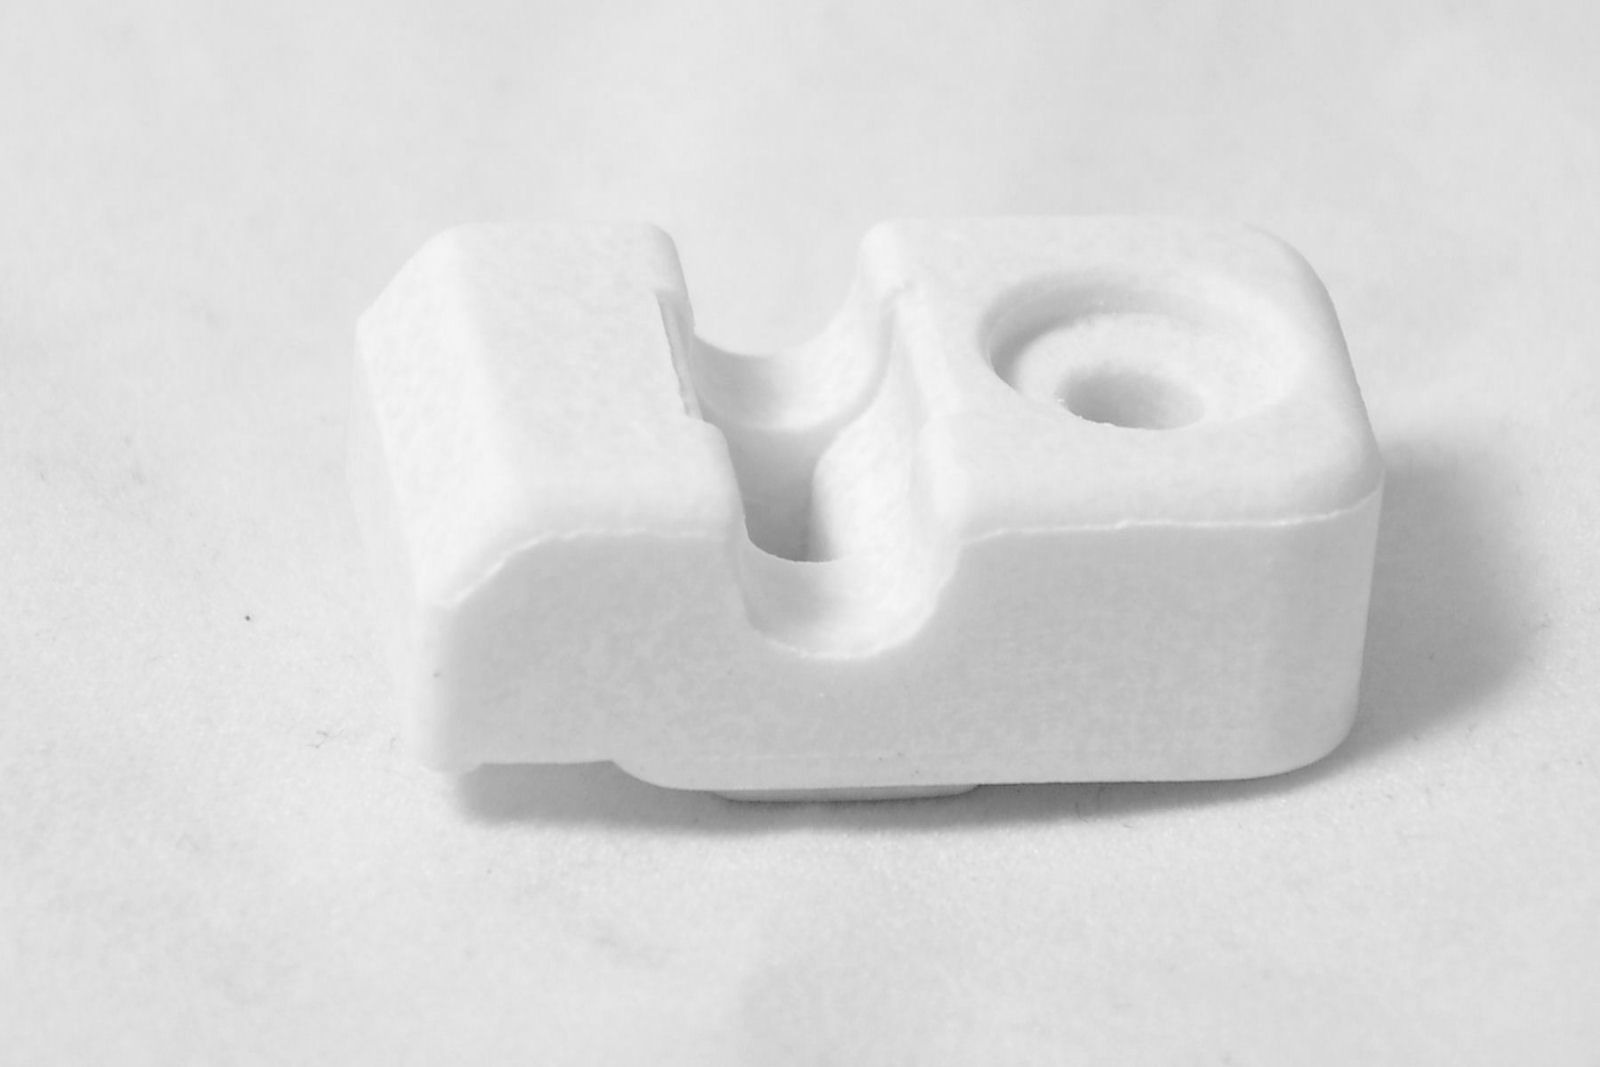 Ceramic Heater Support for Panasonic Breadmaker [PAN.BRE.ADE09-163]